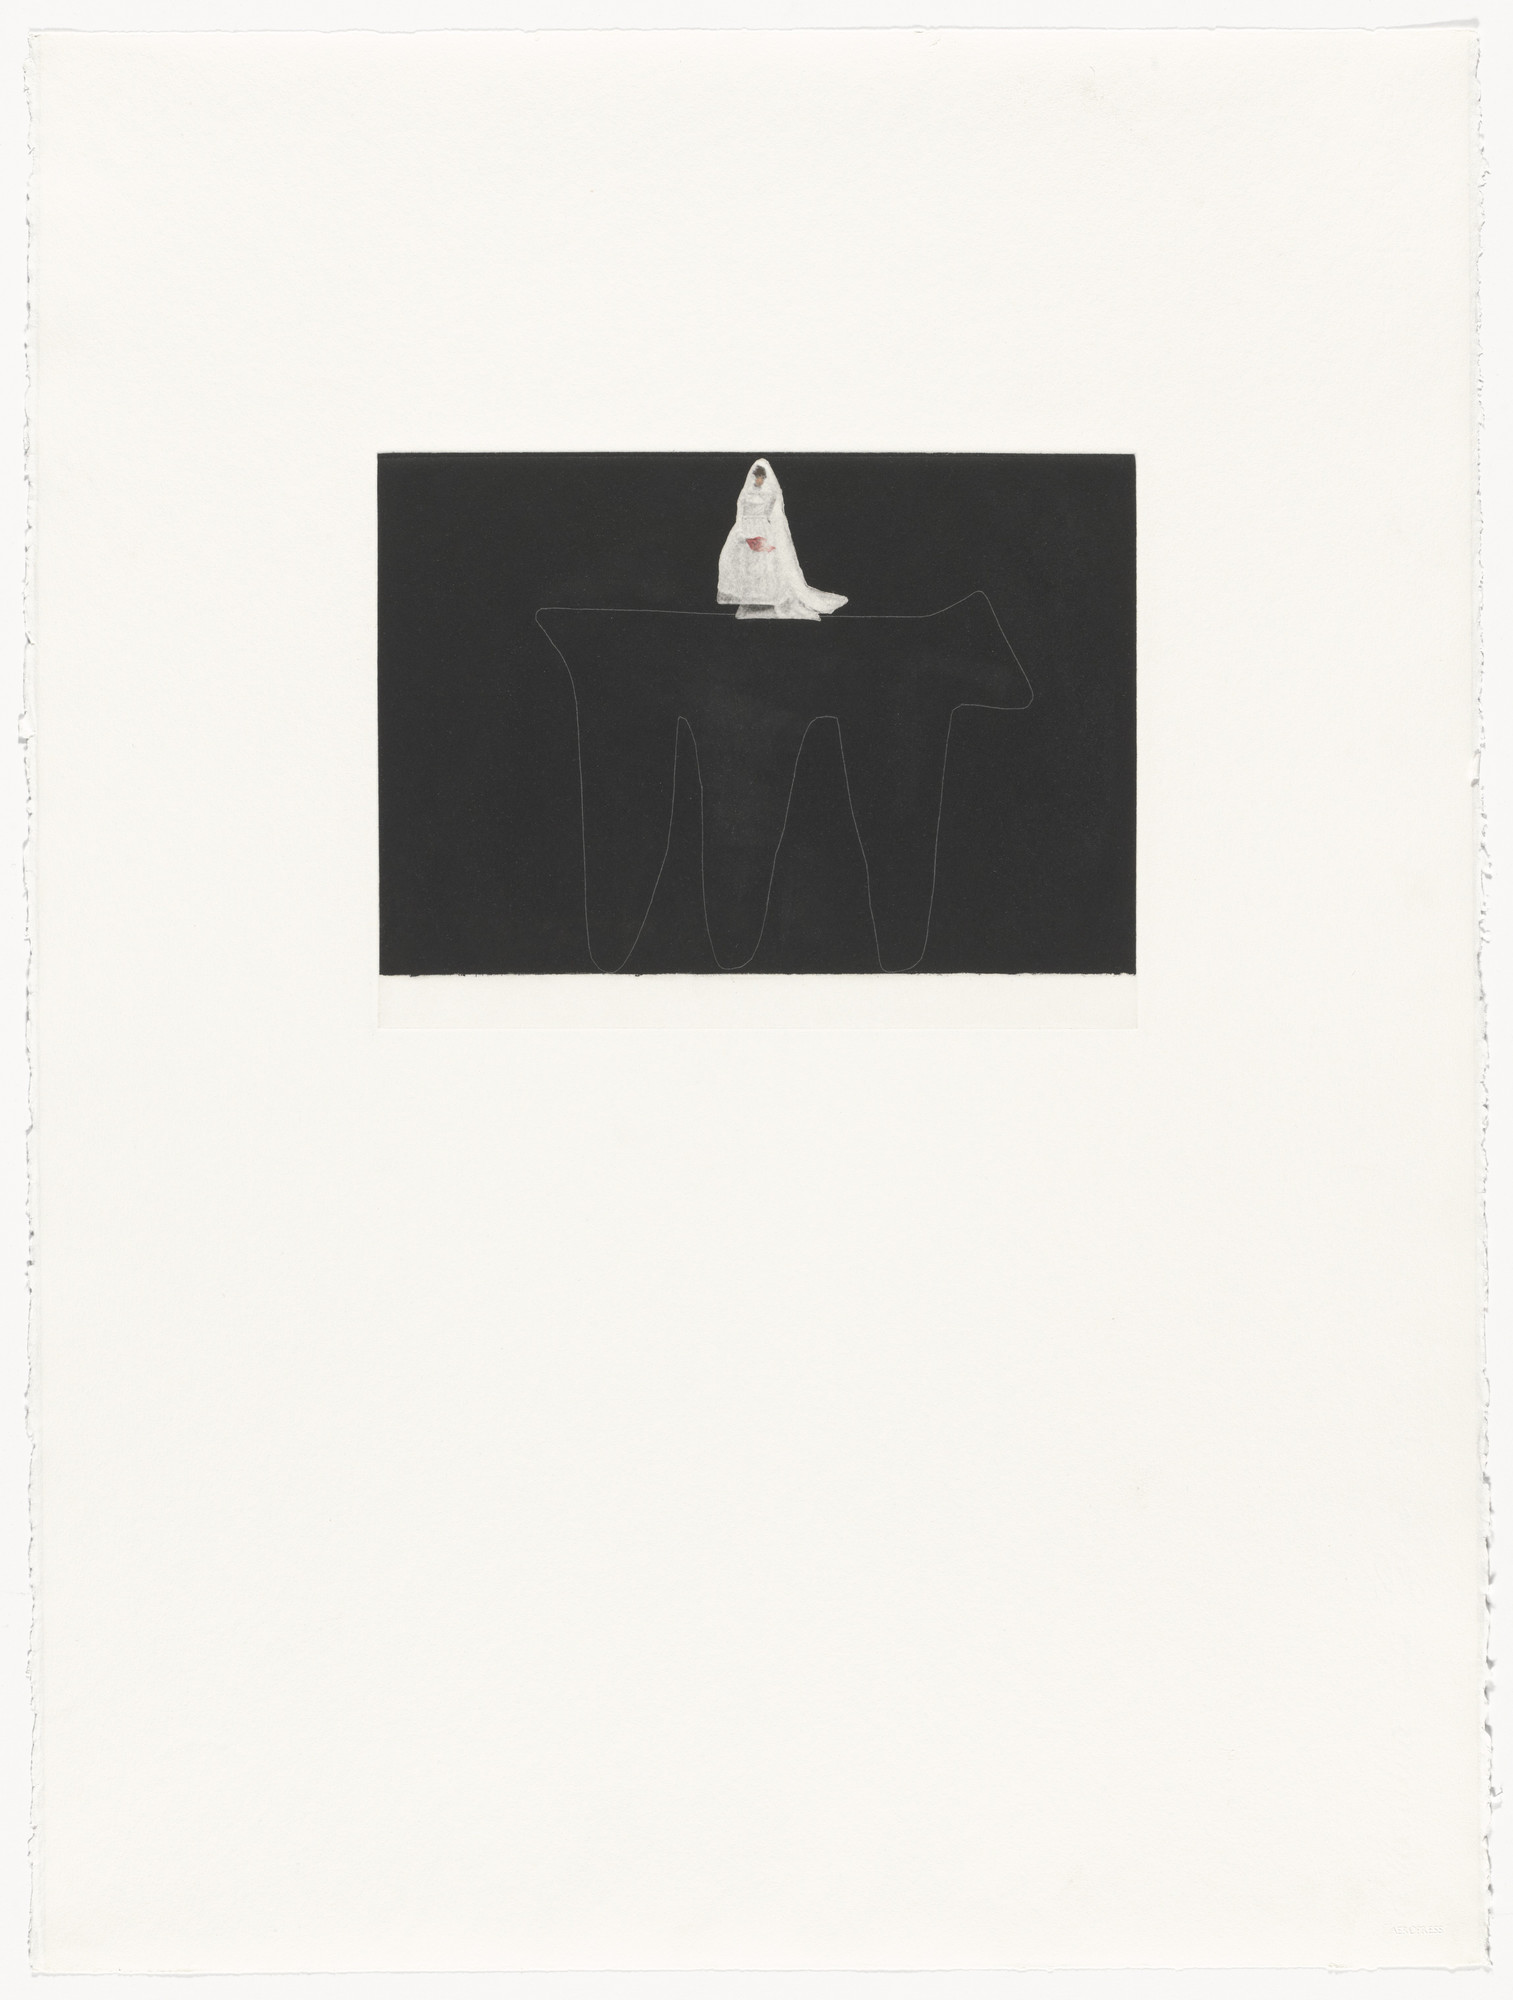 Lois Lane. Untitled from the portfolio Six Aquatints. 1979